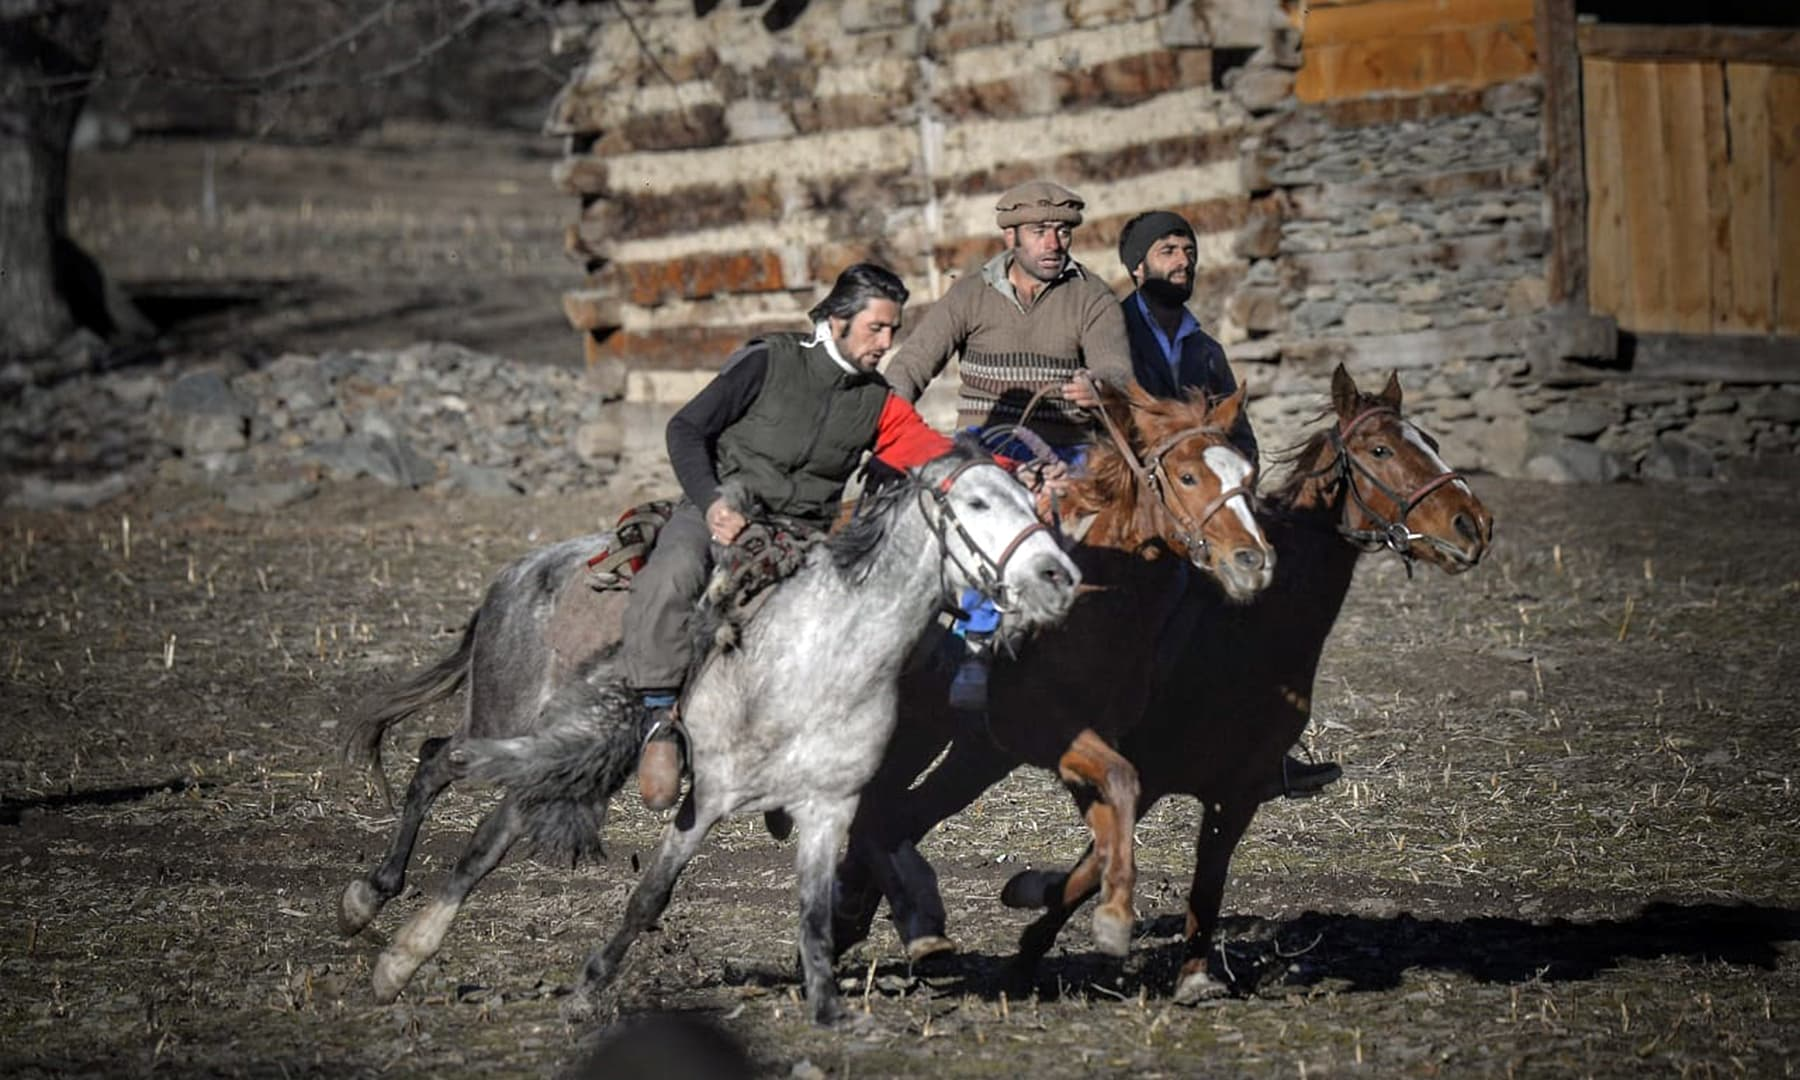 The sport of Buzkashi being played by the Kalasha community members.